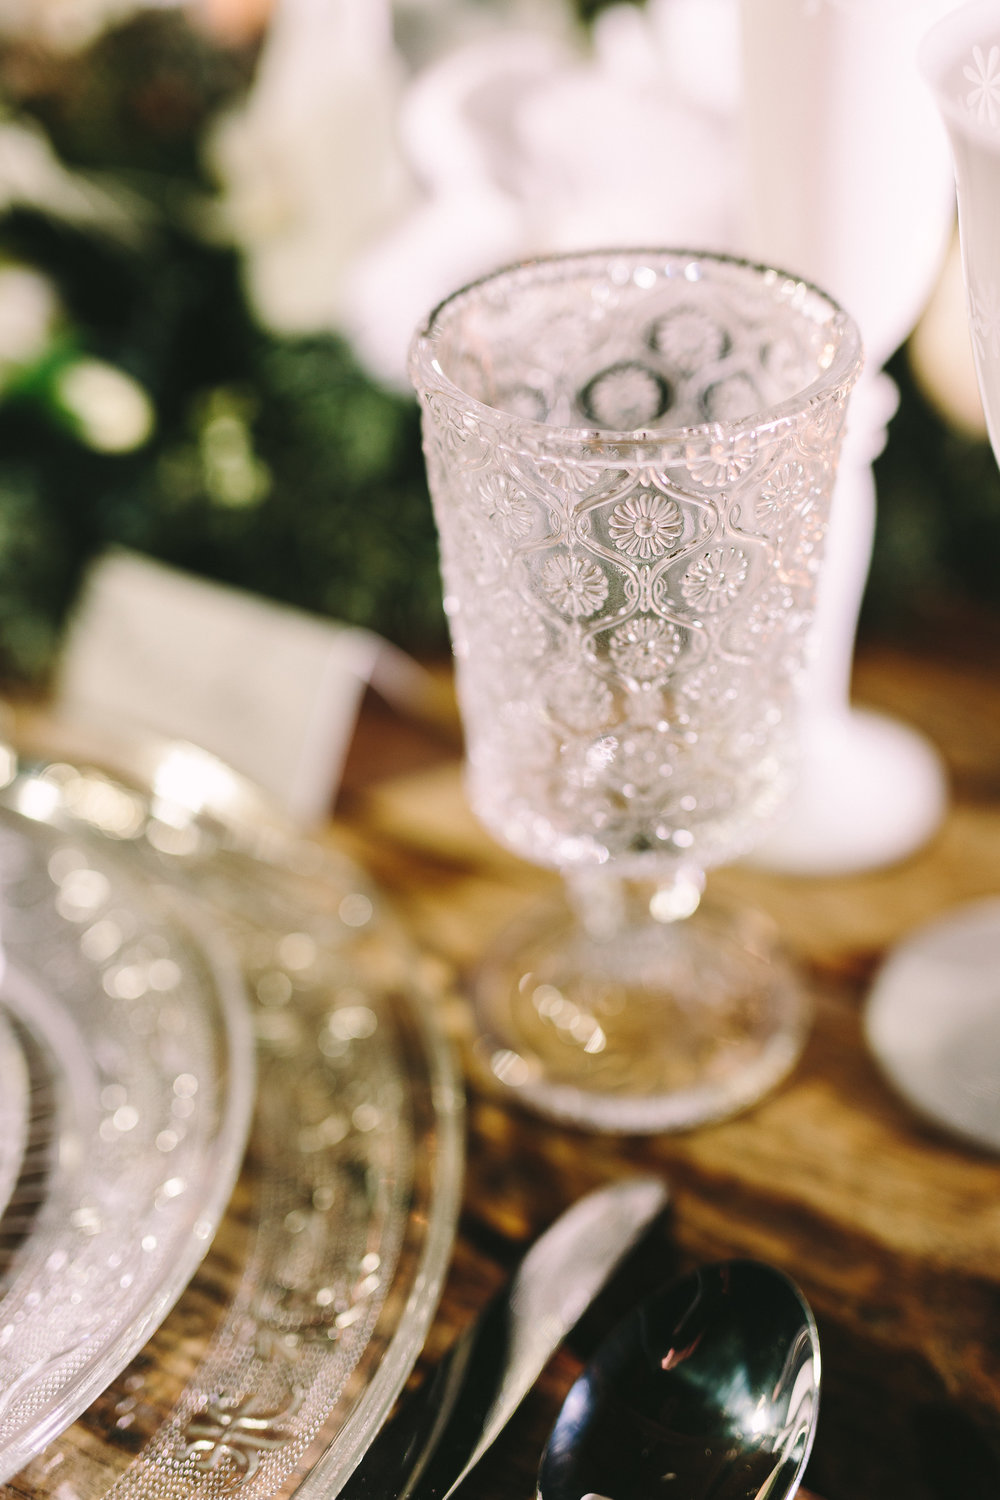 Destination-winter-wedding-greece-wedding-planning-snow-white-feathers-luxury-silver-cutlery-napkin-crystal-sousplat-orchids-escortcards